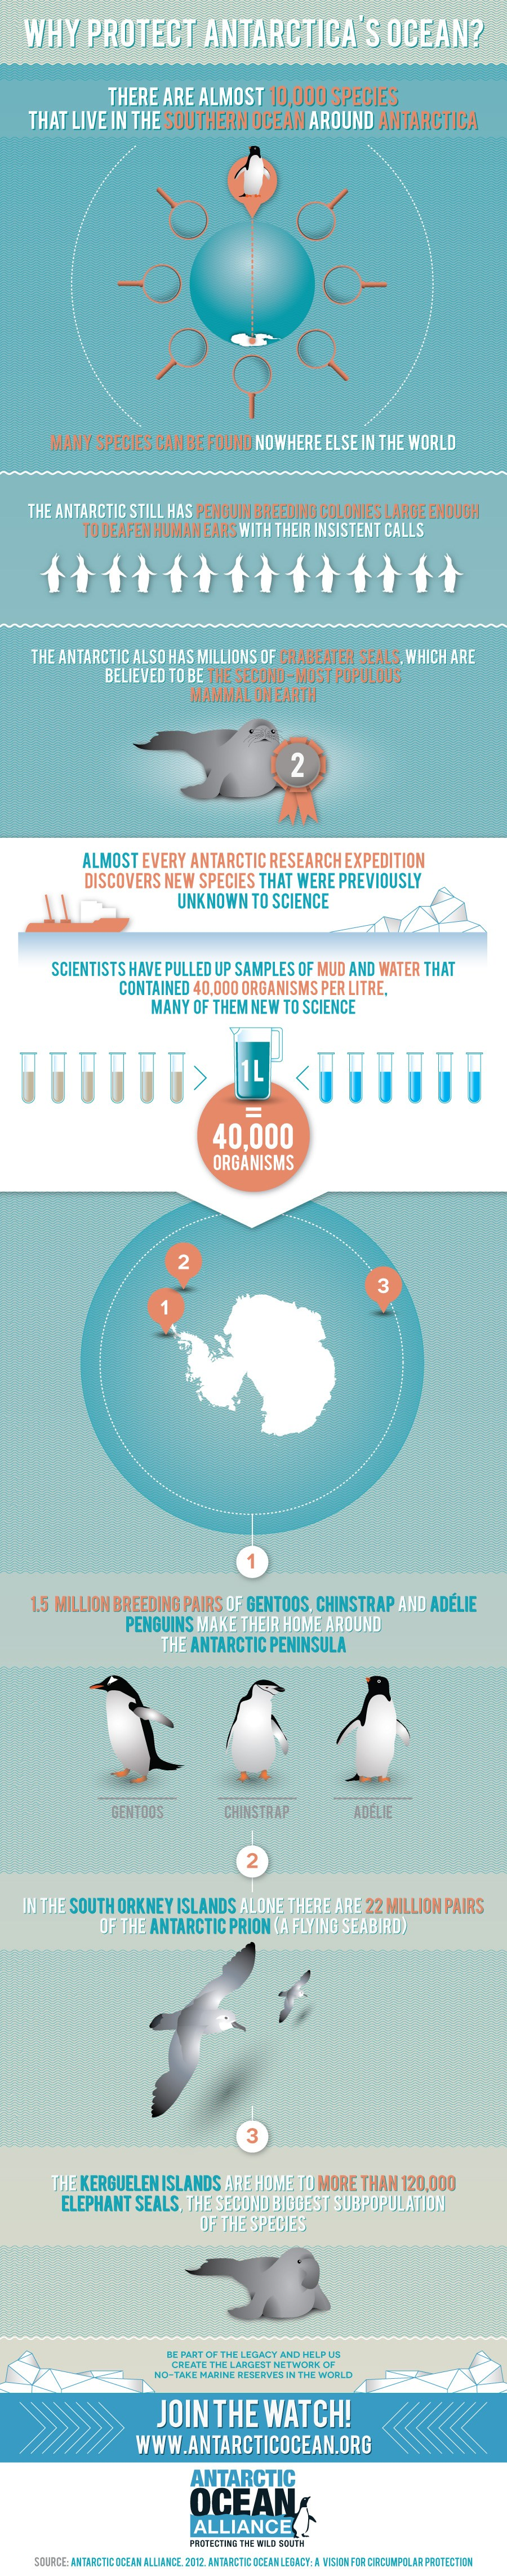 Why Protect Antarctica's Ocean Infographic